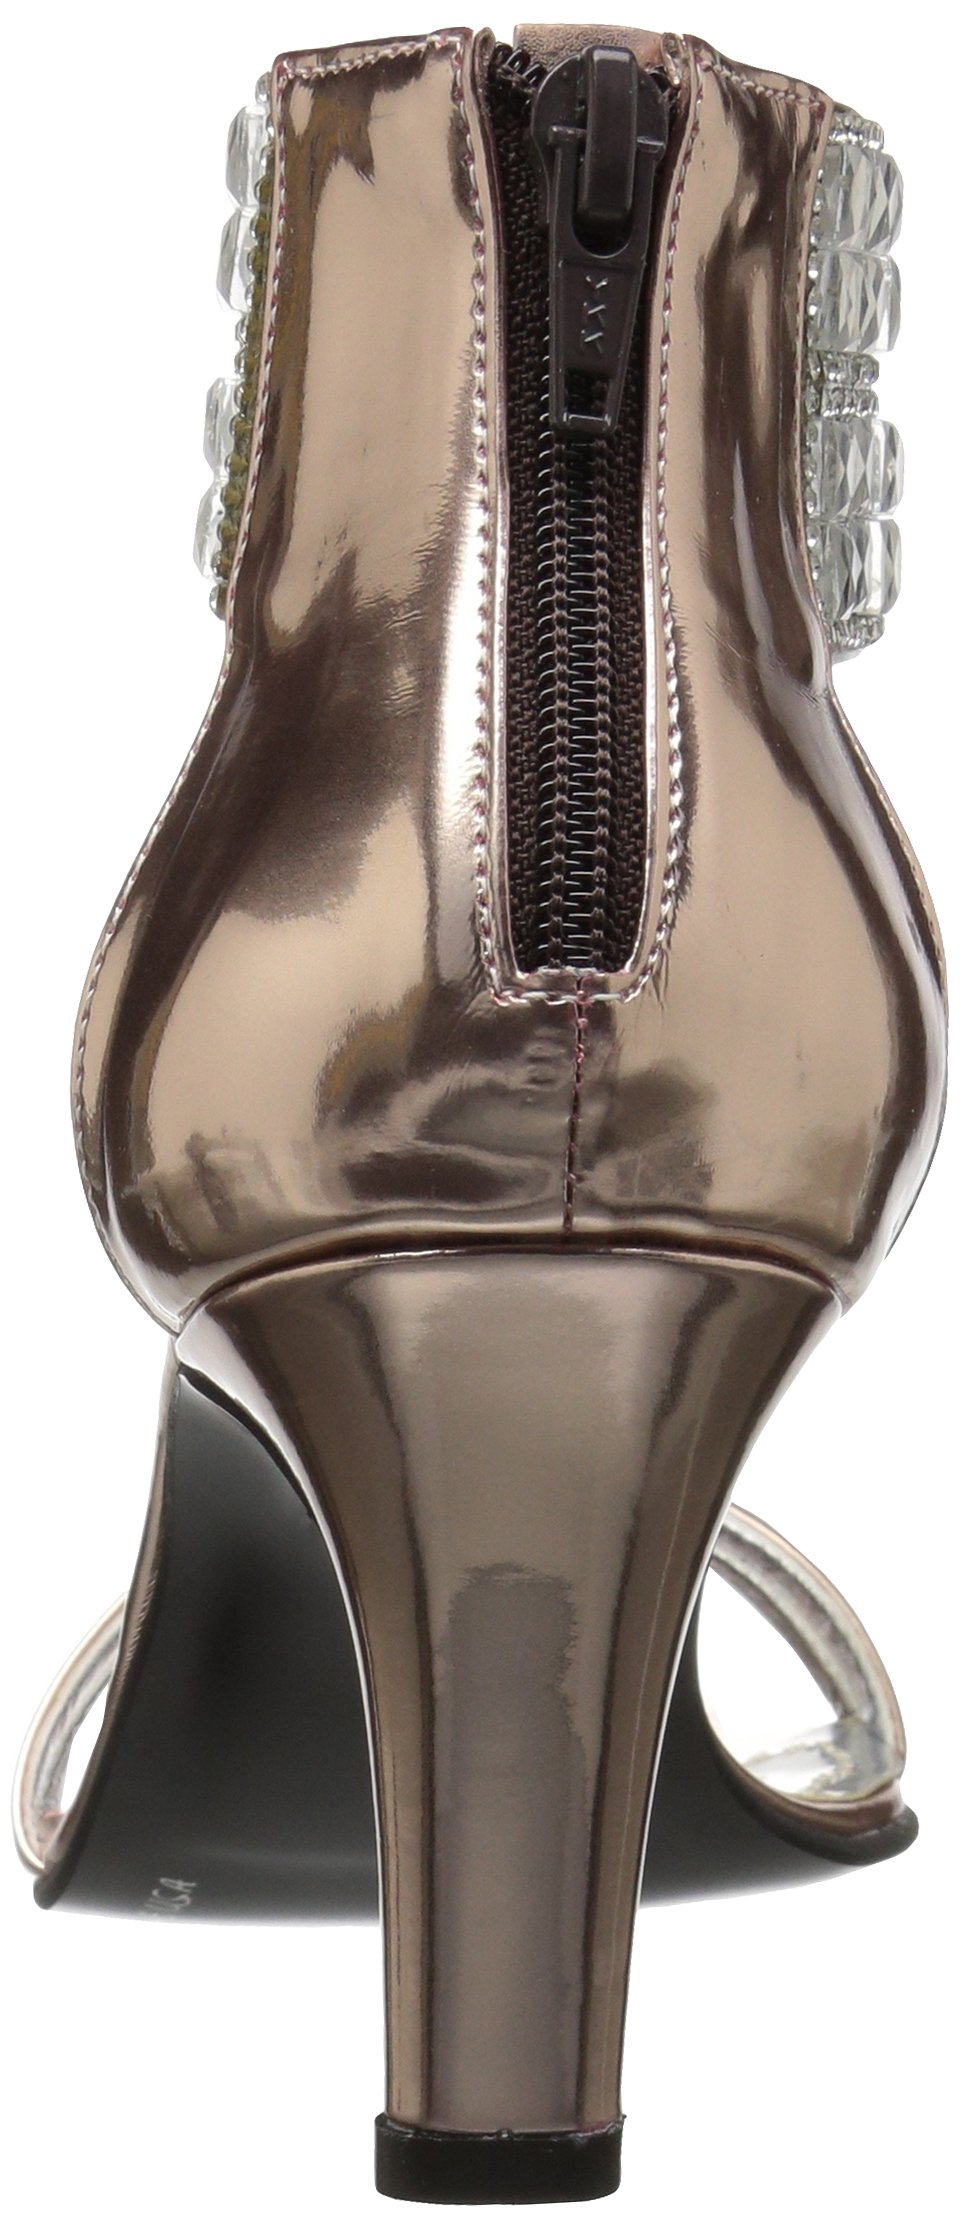 Love & Liberty Women's Scarlett-Ll Dress Sandal, Rose Gold, 9 M US by Love & Liberty (Image #2)